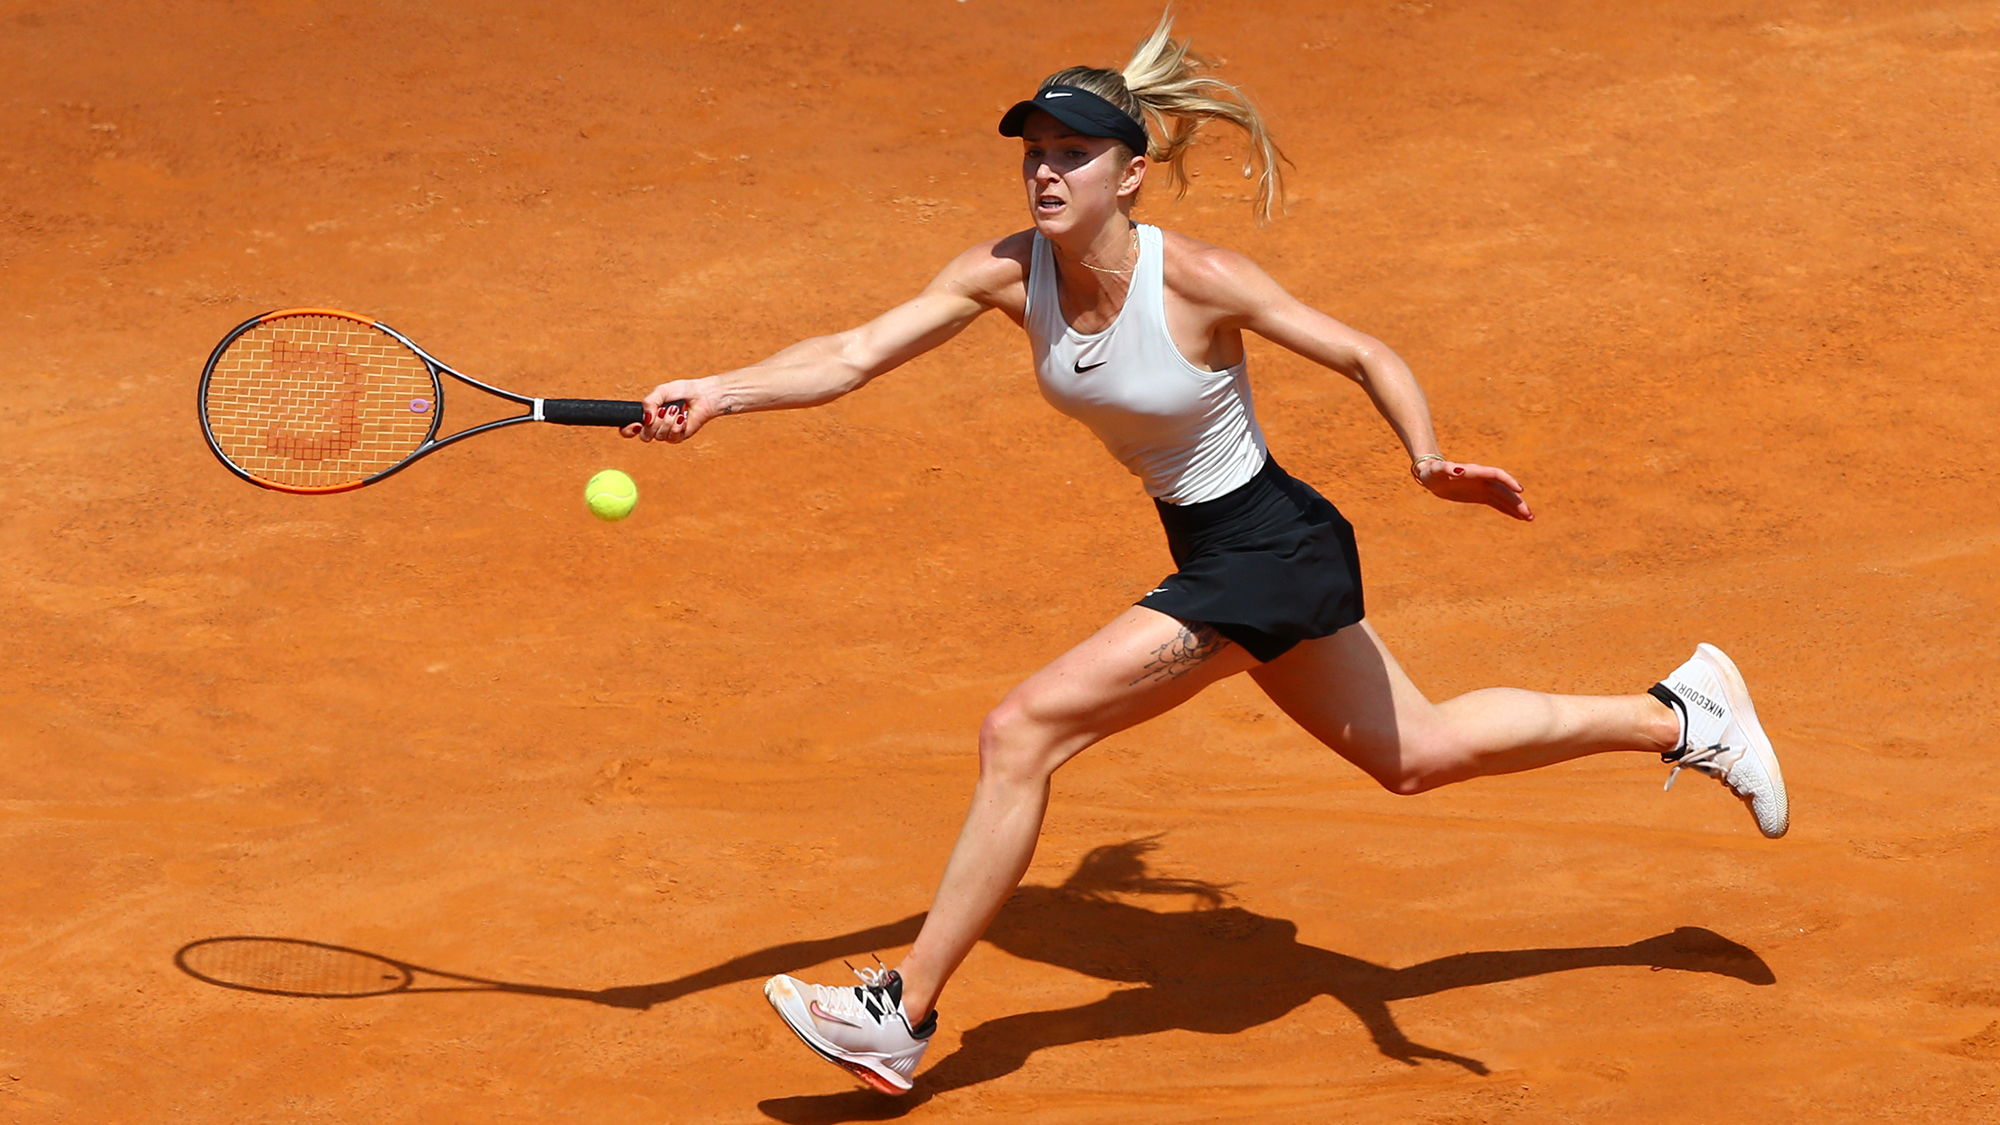 Simona Halep French Open 2018 Preview